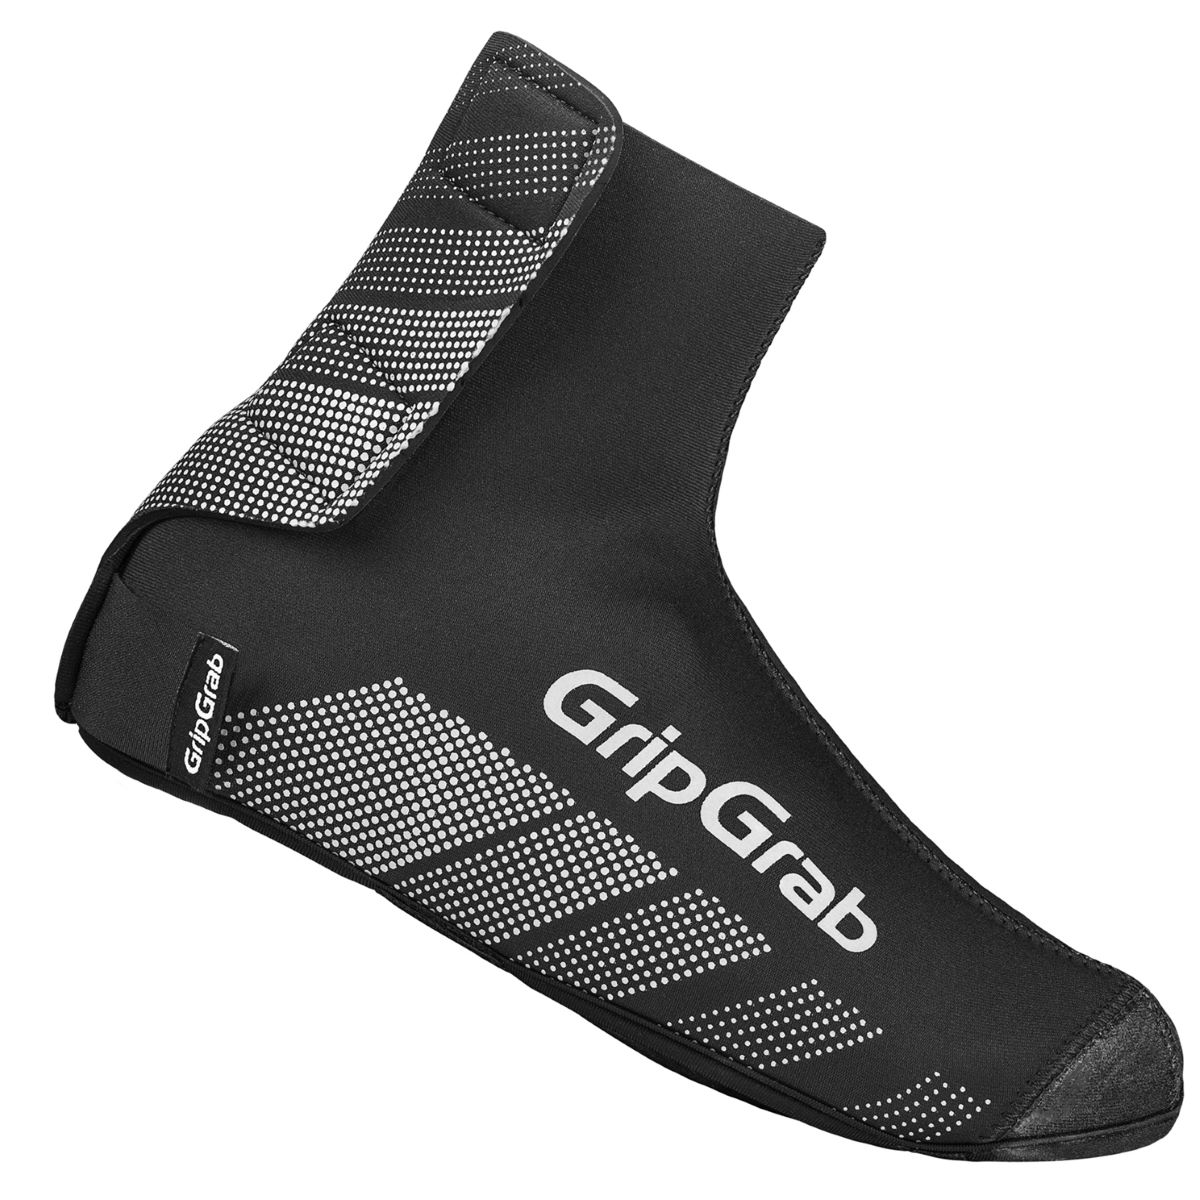 Couvre-chaussures GripGrab Ride (hiver) - XS Noir Couvre-chaussures